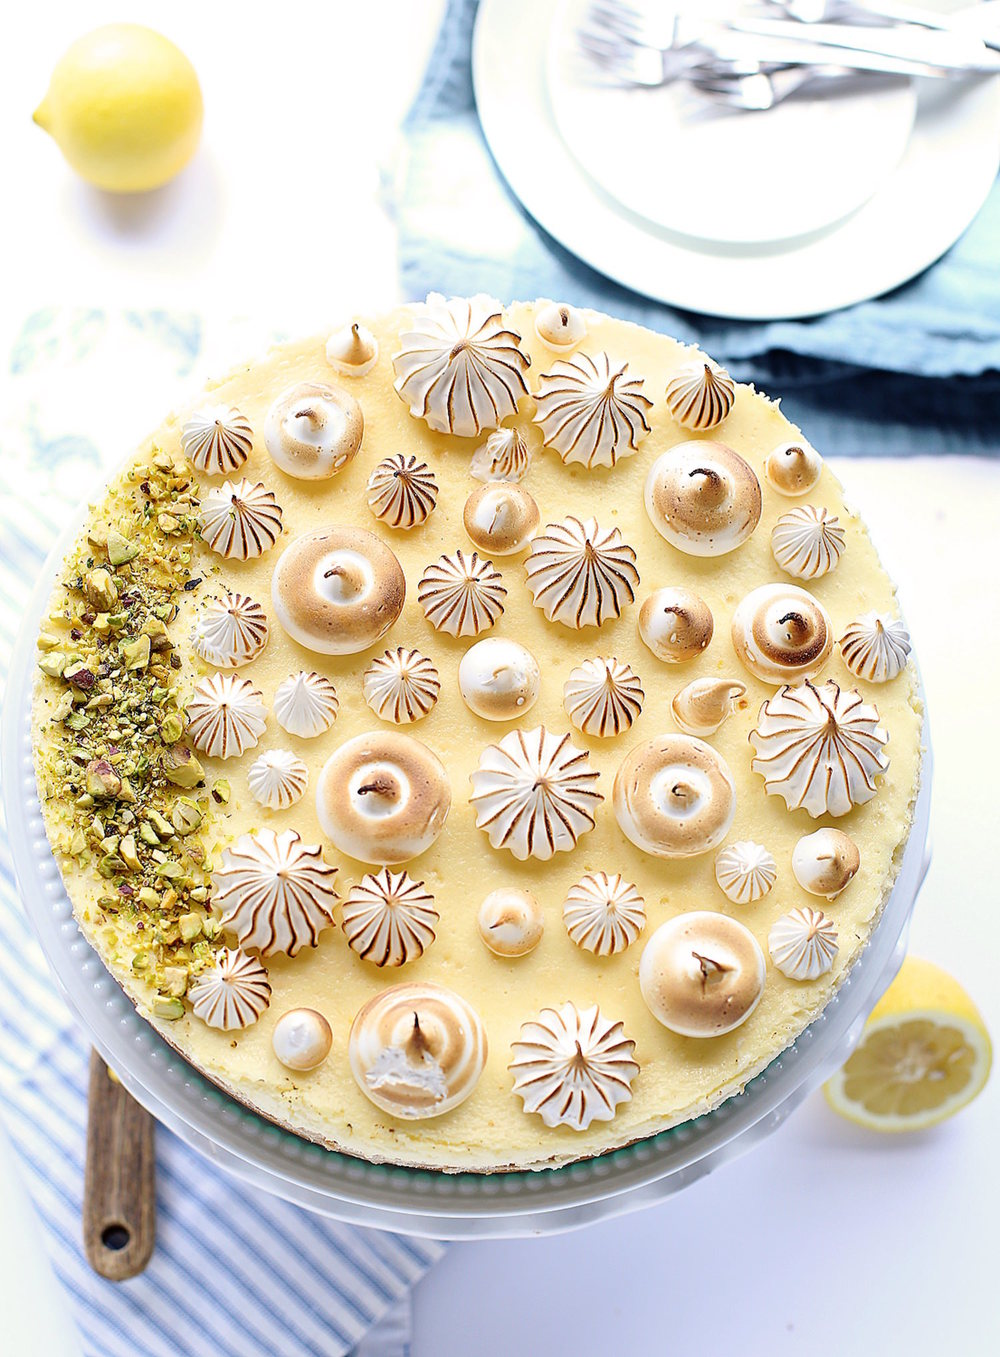 Creamy Lemon Meringue Cheesecake: buttery cookie crust, creamy, tart, spiked lemon filling, and sweet meringue topping. SO good! | TrufflesandTrends.com